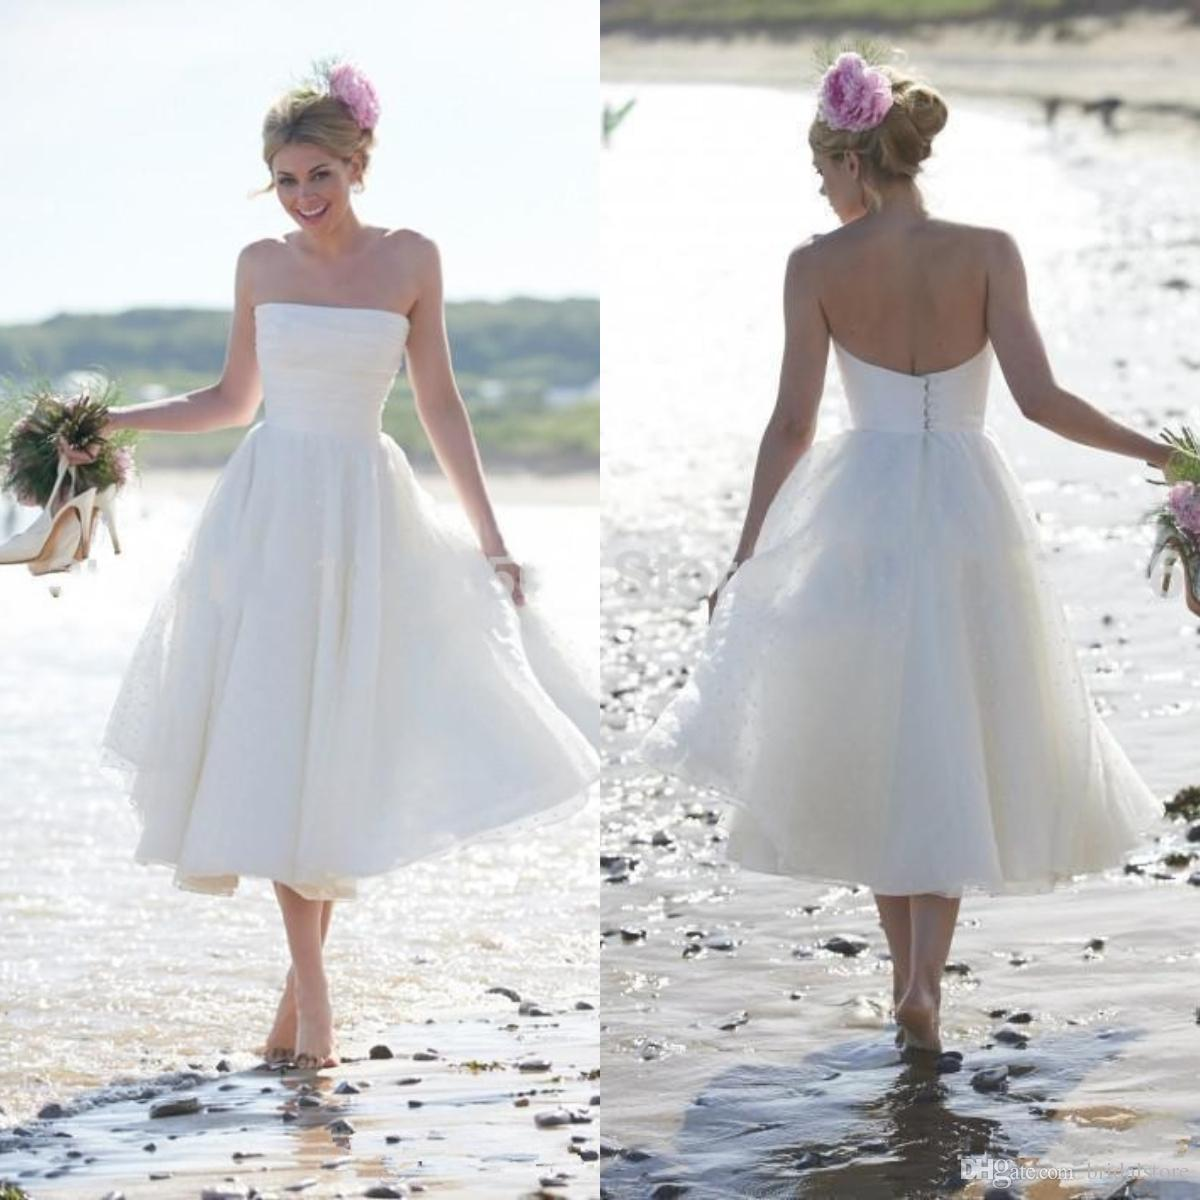 Discount White Cheap Best Short Beach Wedding Dresses A Line Plus Size Strapless Tea Length Bridal Gowns Simple Boho Summer Holiday Guest Lace: Simple Short Wedding Dresses Plus Size At Websimilar.org